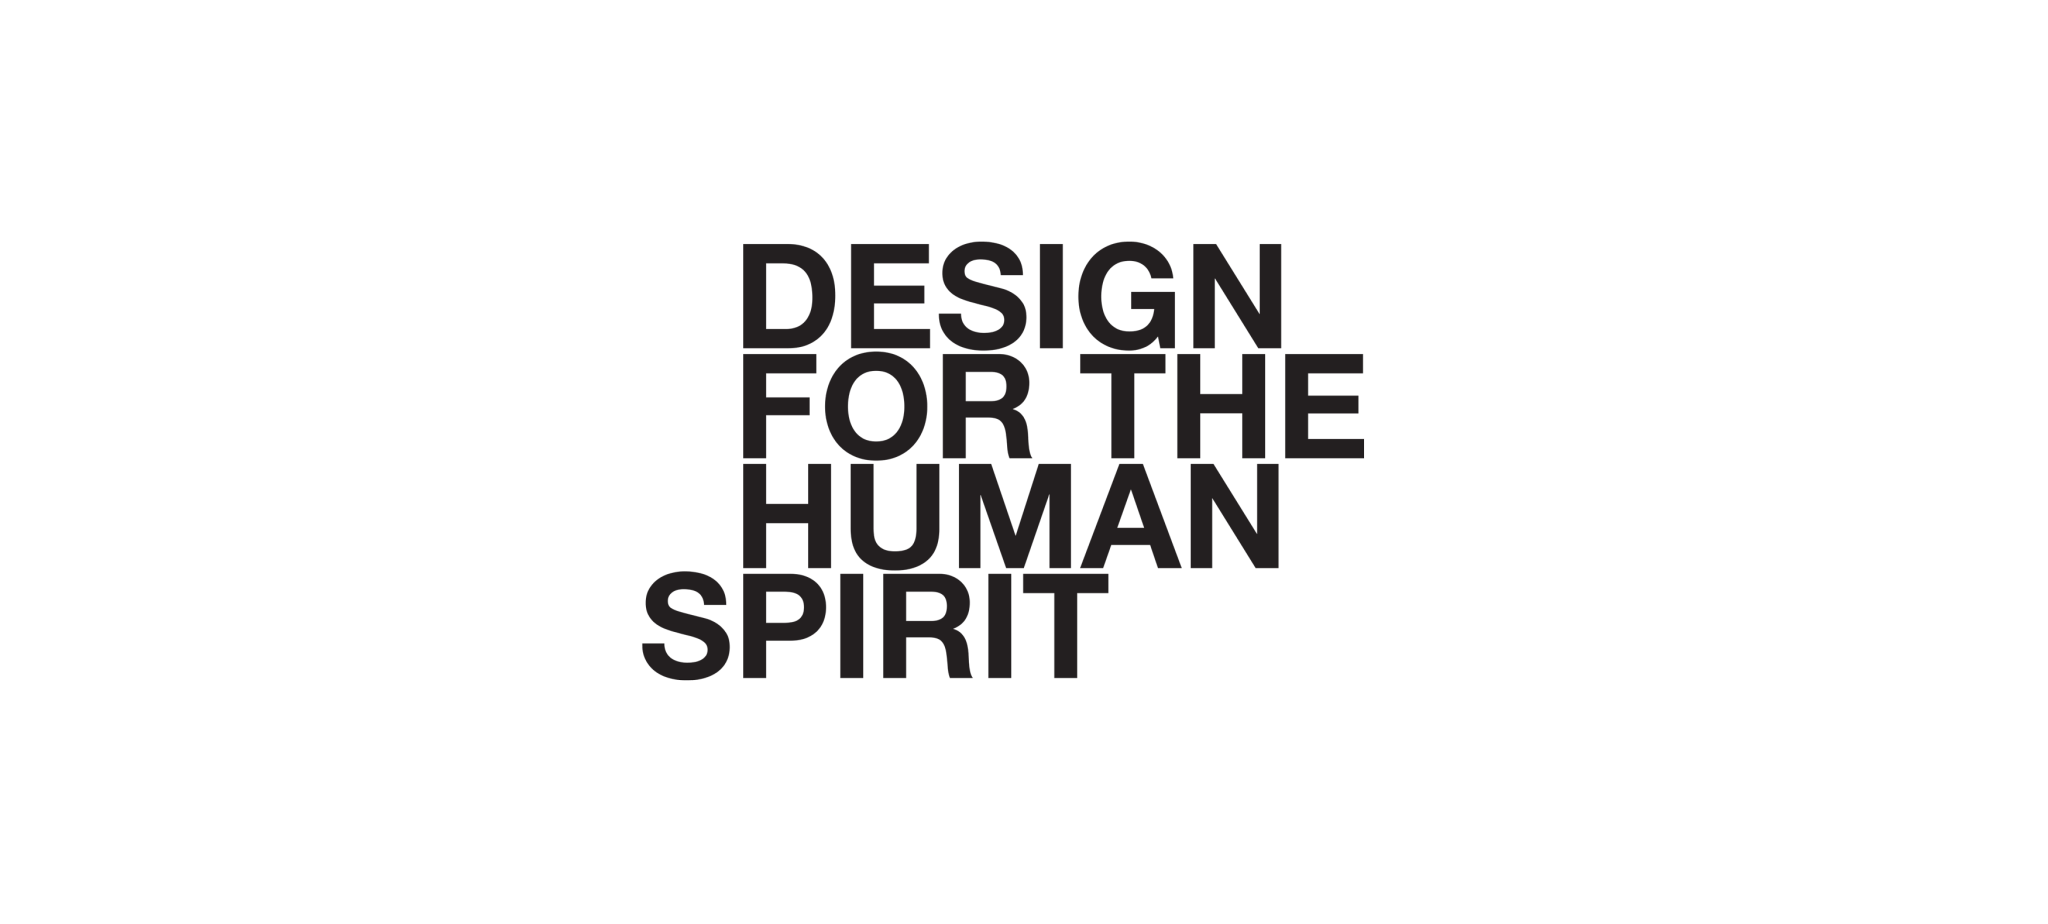 Design for the human spirit